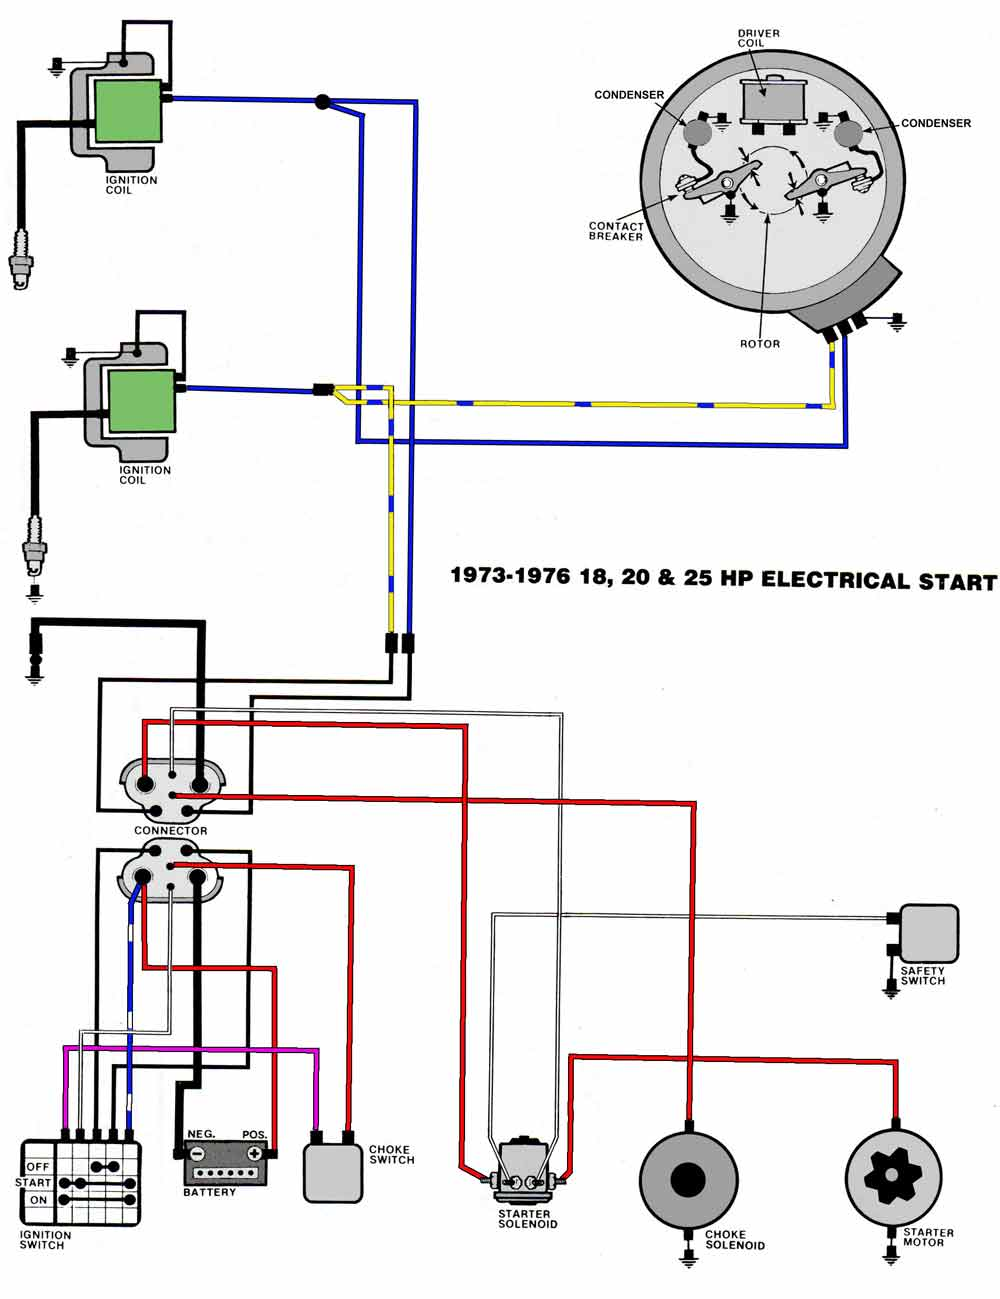 hight resolution of evinrude 1970 25 hp how do i wire the starter solenoid battery page 1976 omc starter wiring diagram